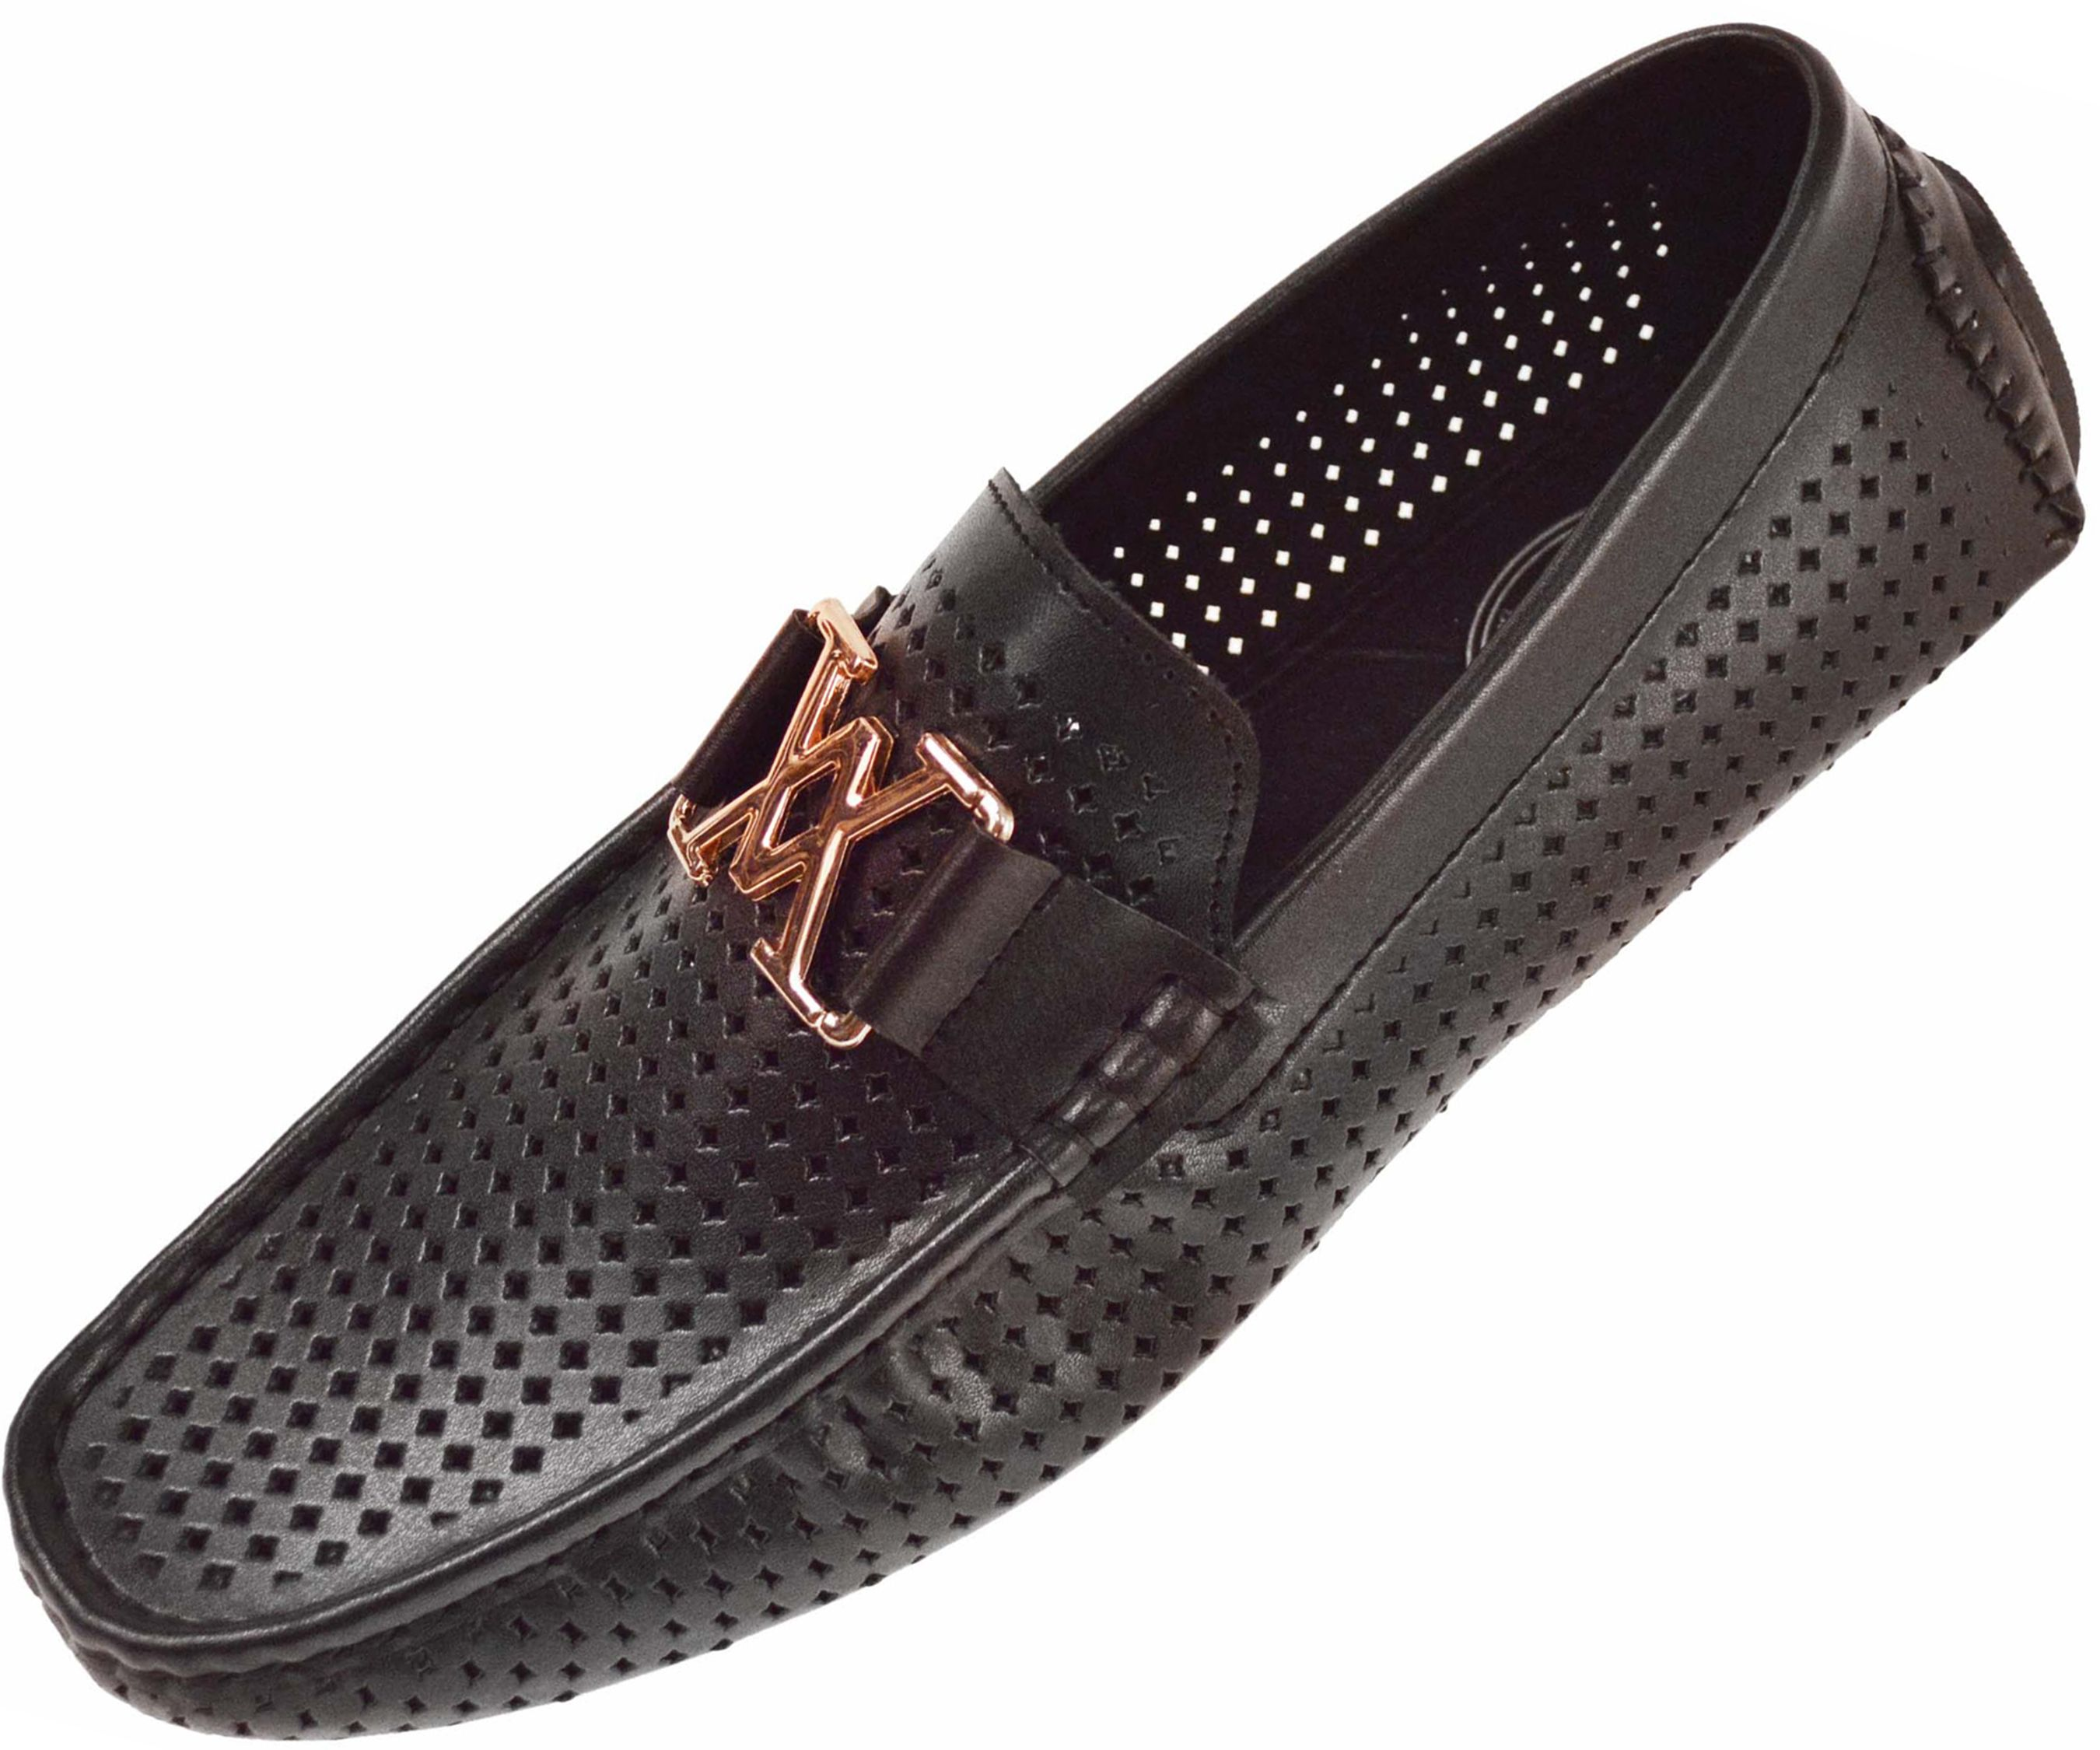 ba79266bf7 Amali Mens Black Diamond Perforated Smooth Driving Shoe : 1425-000 ...